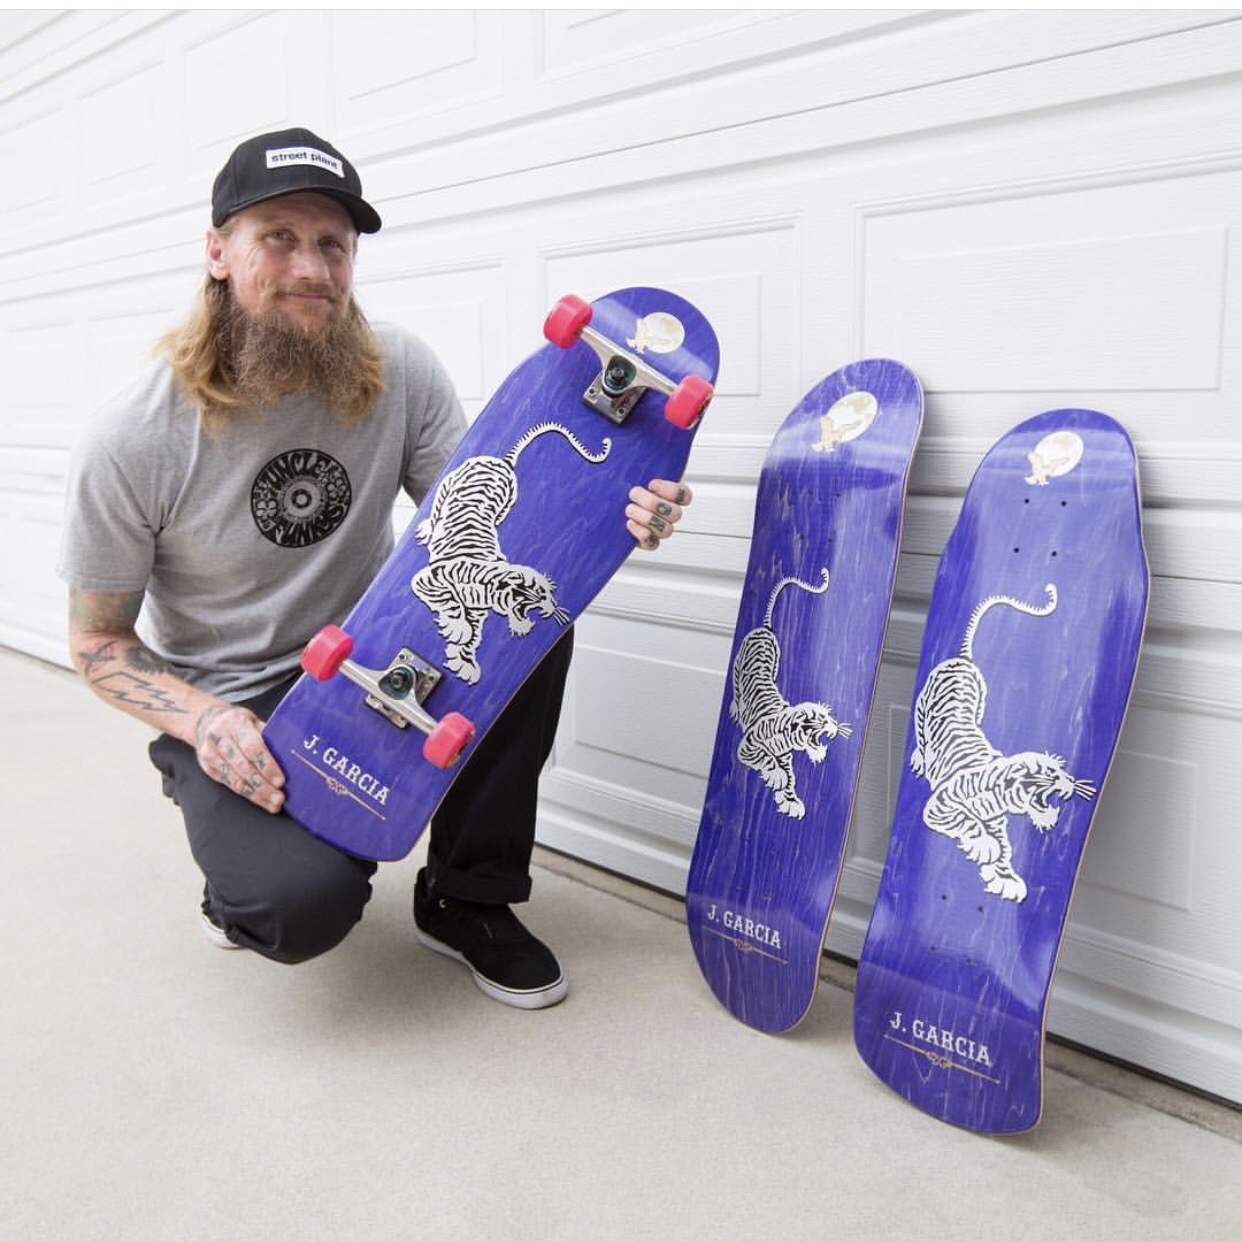 Jerry Garcia Inspired Skateboard Released By Street Plant